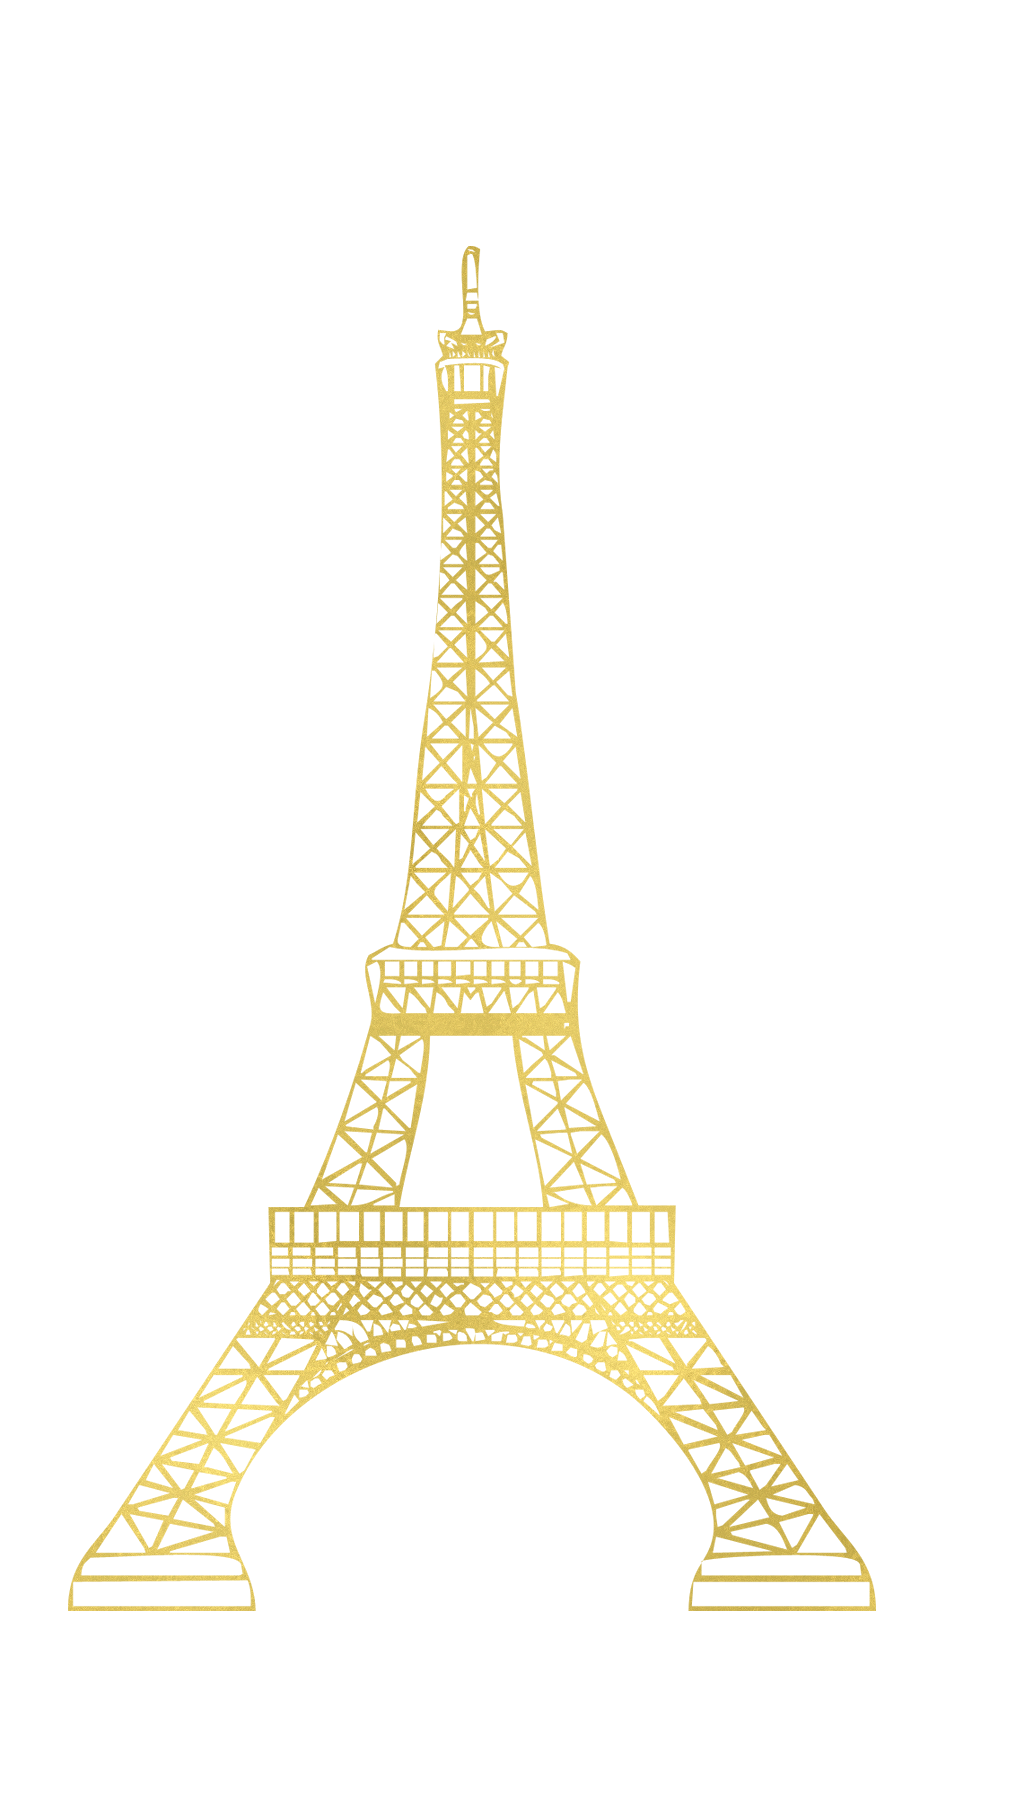 Torre eiffel gold clipart png image transparent torreeiffel paris torre eiffel gold... image transparent